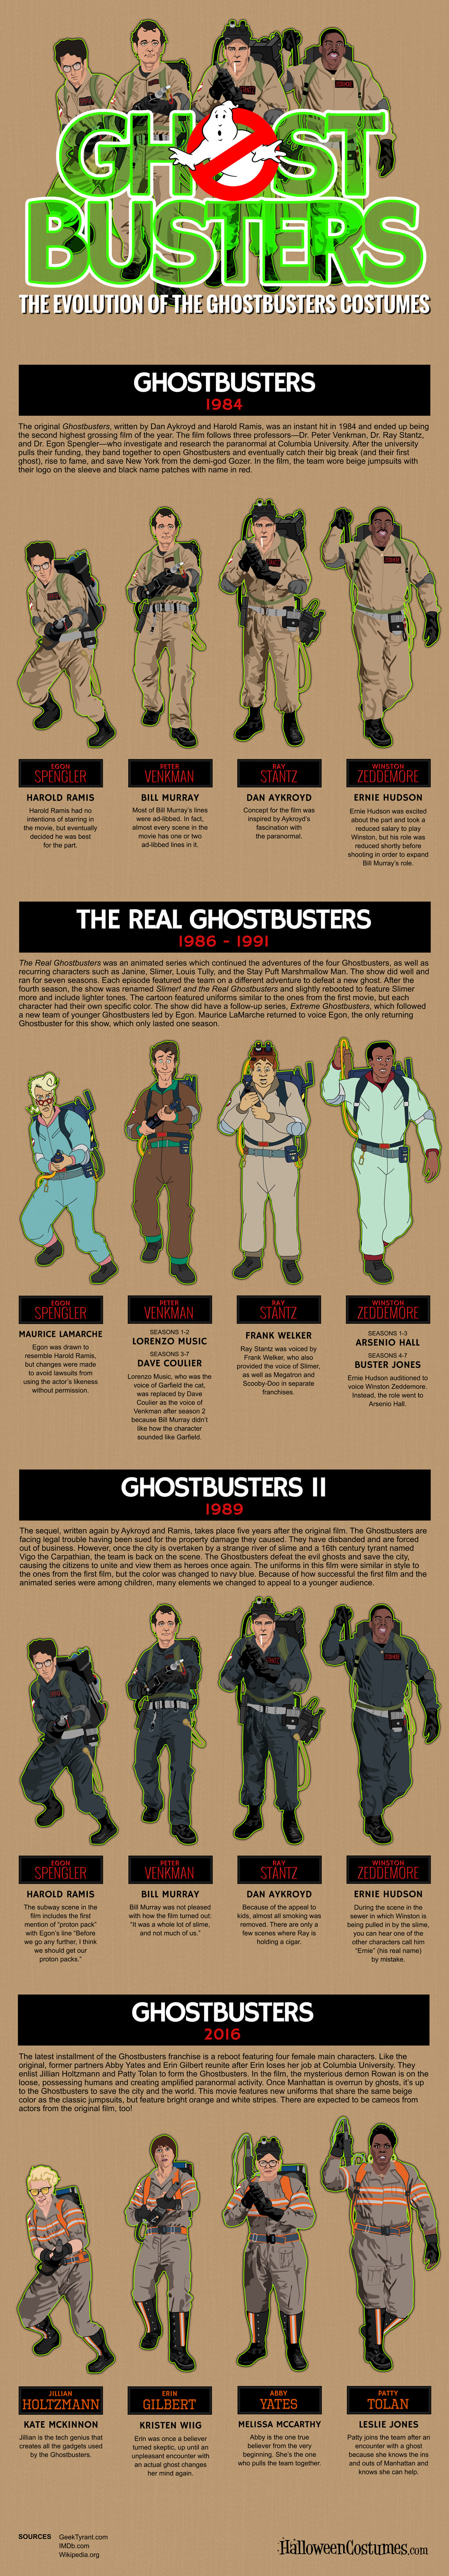 Ghostbusters-Costume-Evolution-Infographic